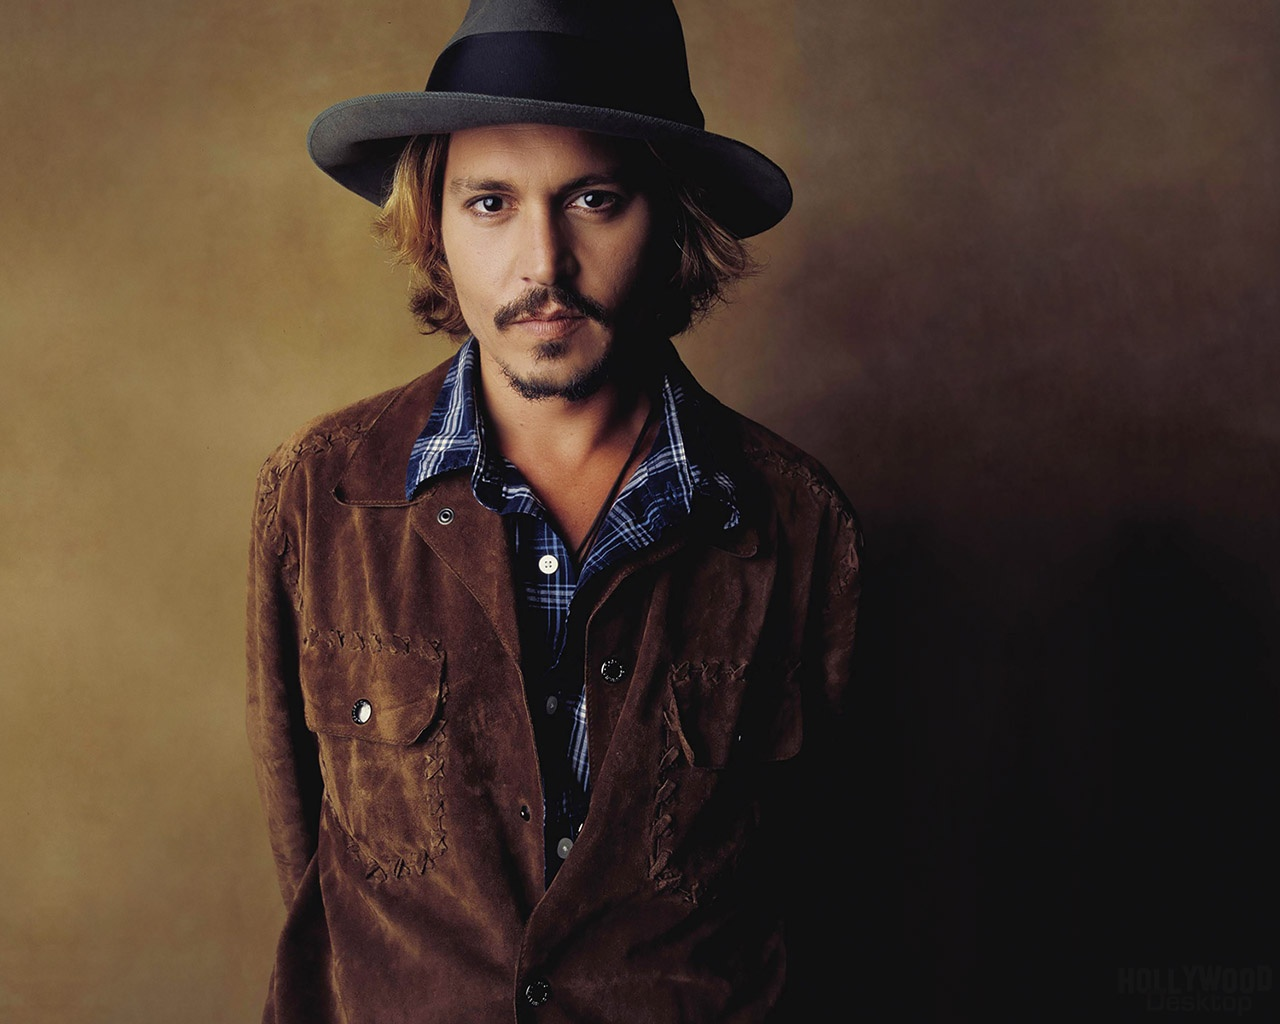 Johnny Depp - Photos